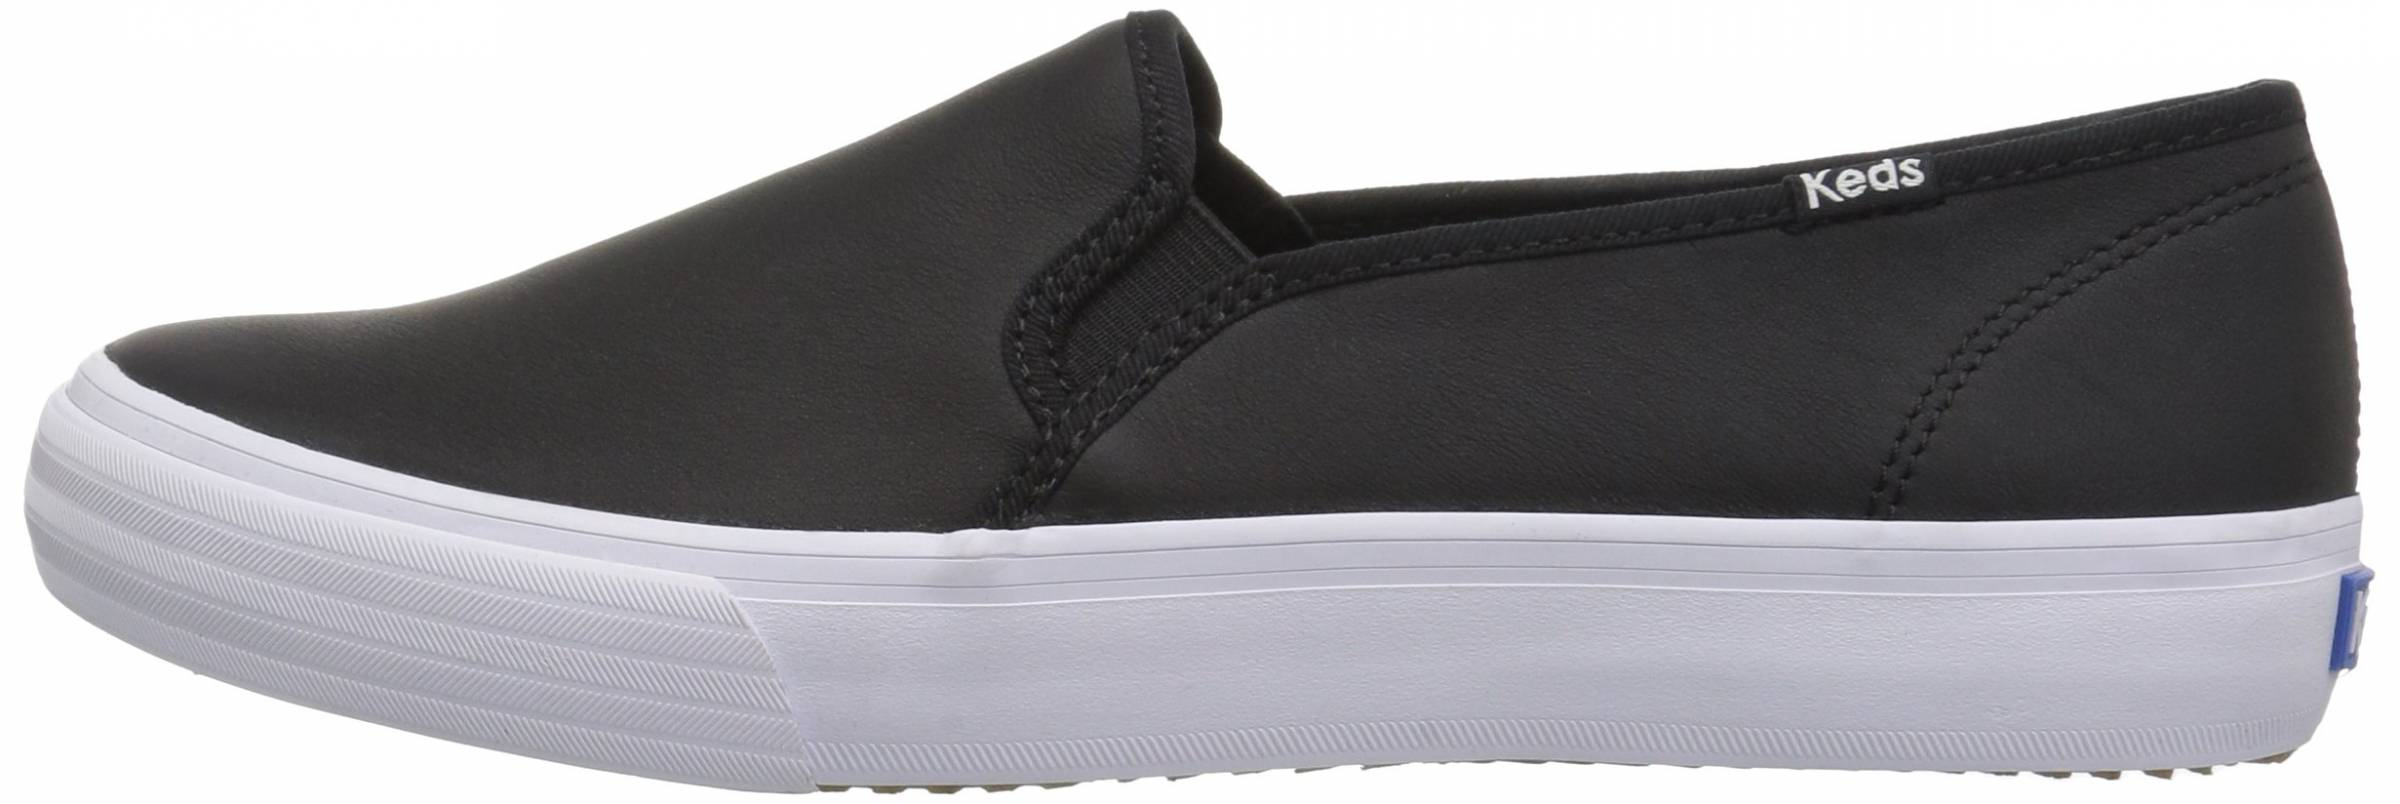 keds black leather sneakers